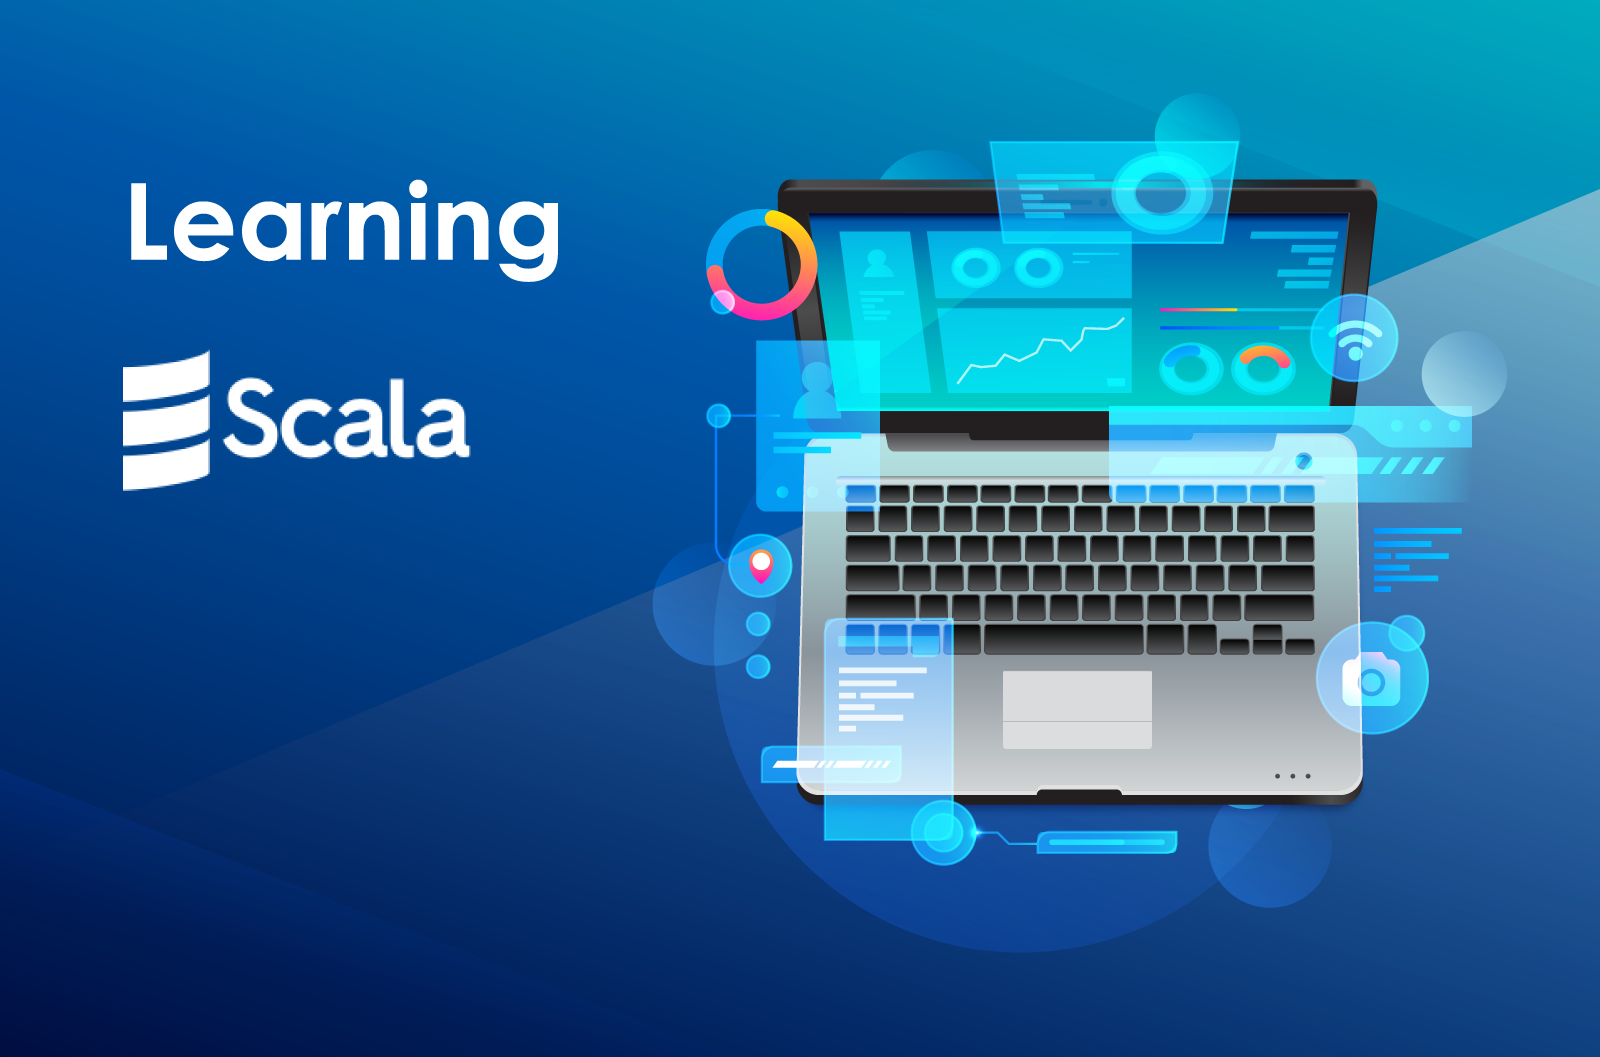 Learning Scala by Example, chapter 4